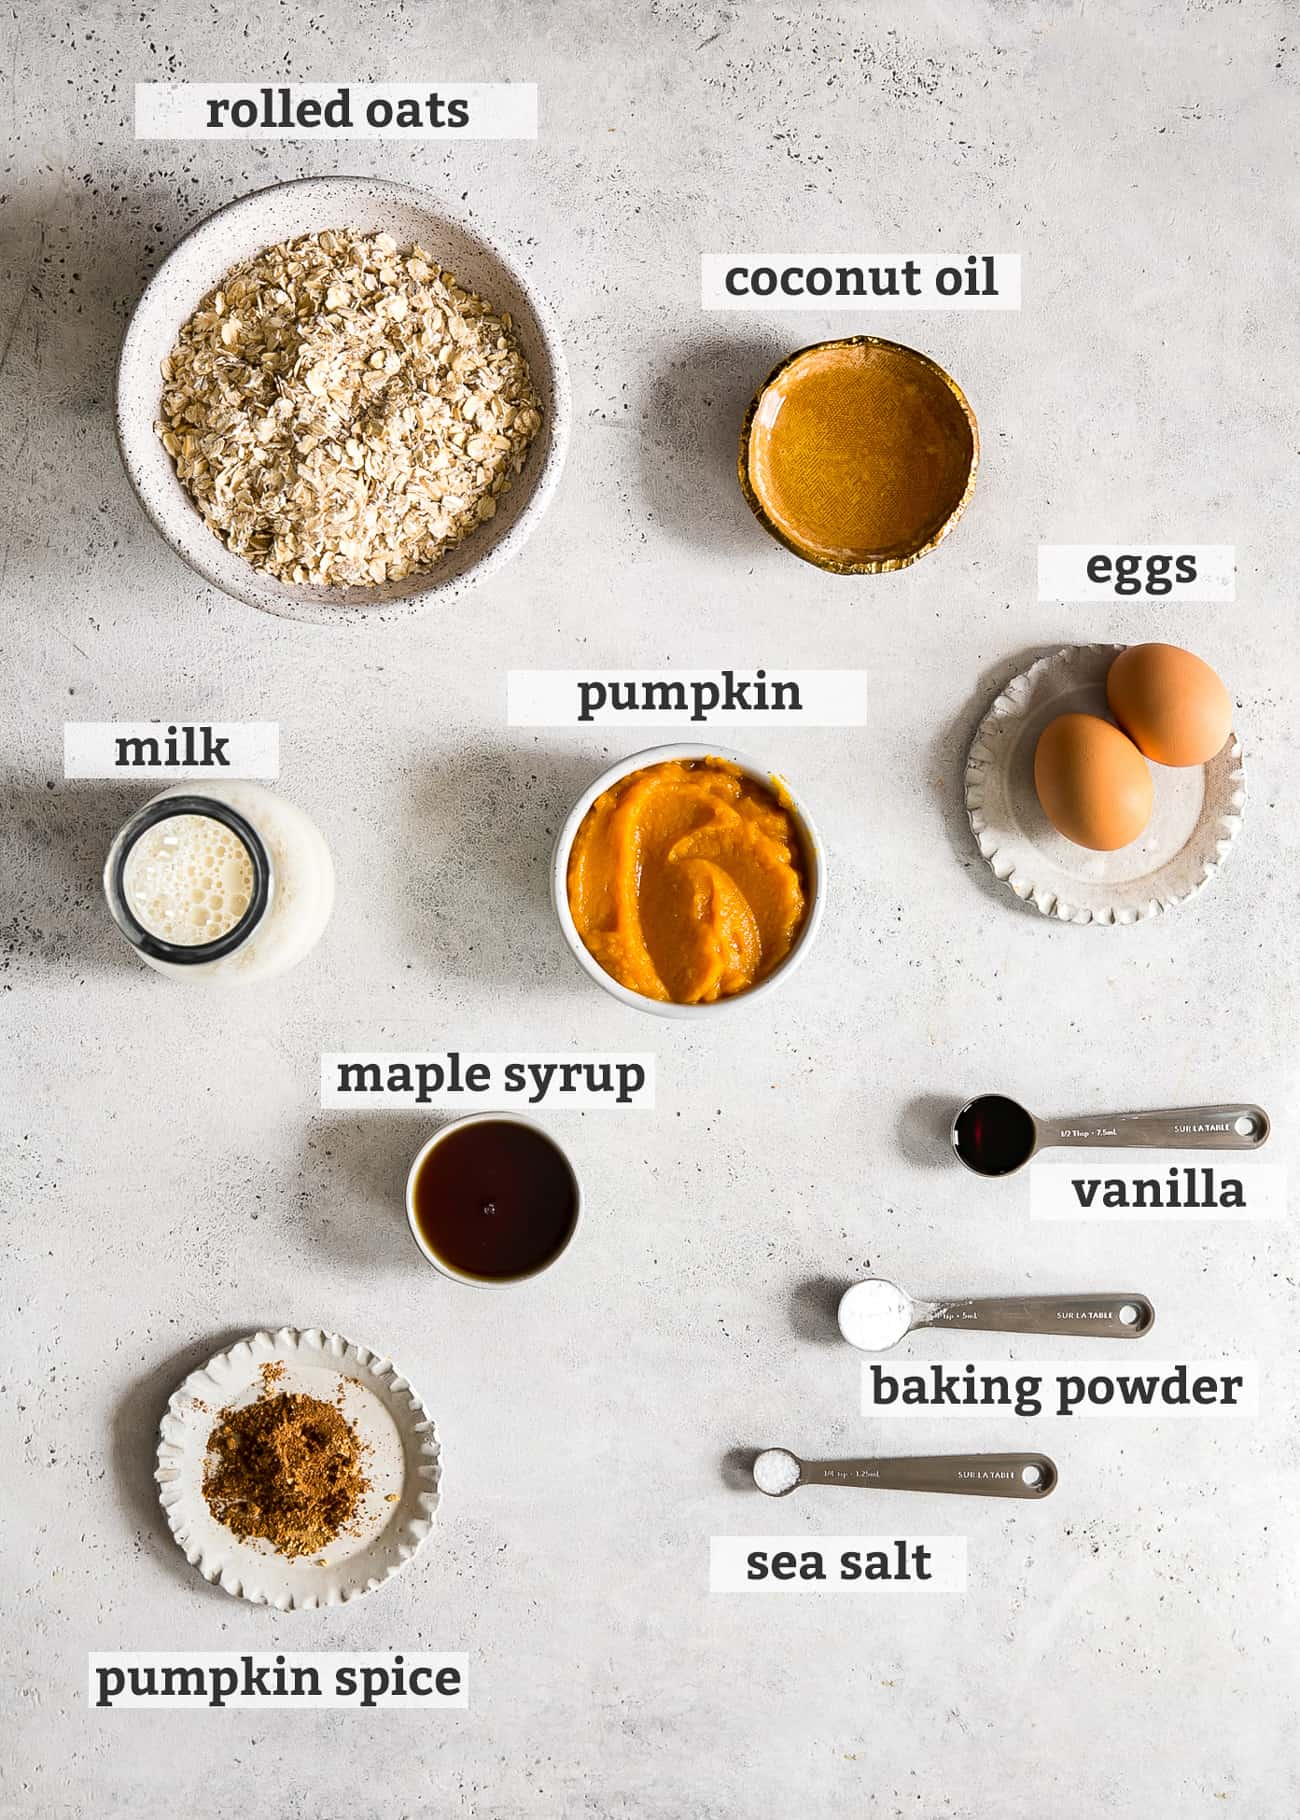 ingredients in bowls and spoons labeled; rolled oats, coconut oil, eggs, pumpkin, vanilla, baking powder, sea salt, pumpkin spice, maple syrup, and milk